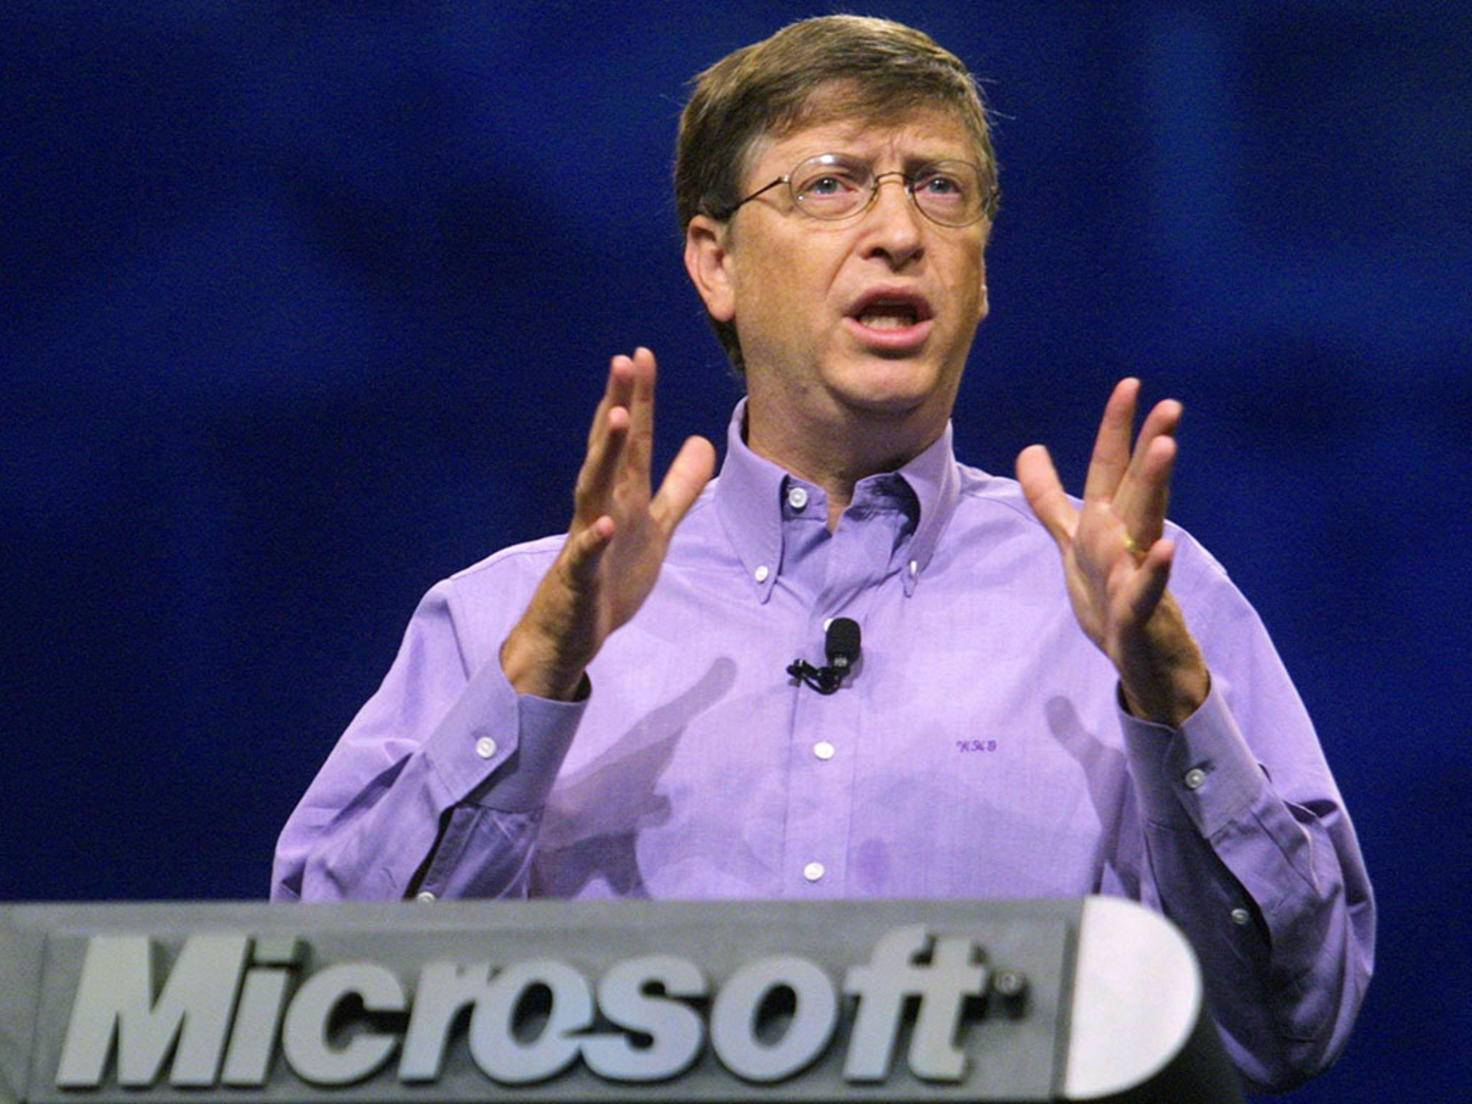 Prophezeiungen der Tech-Bosse: Bill Gates